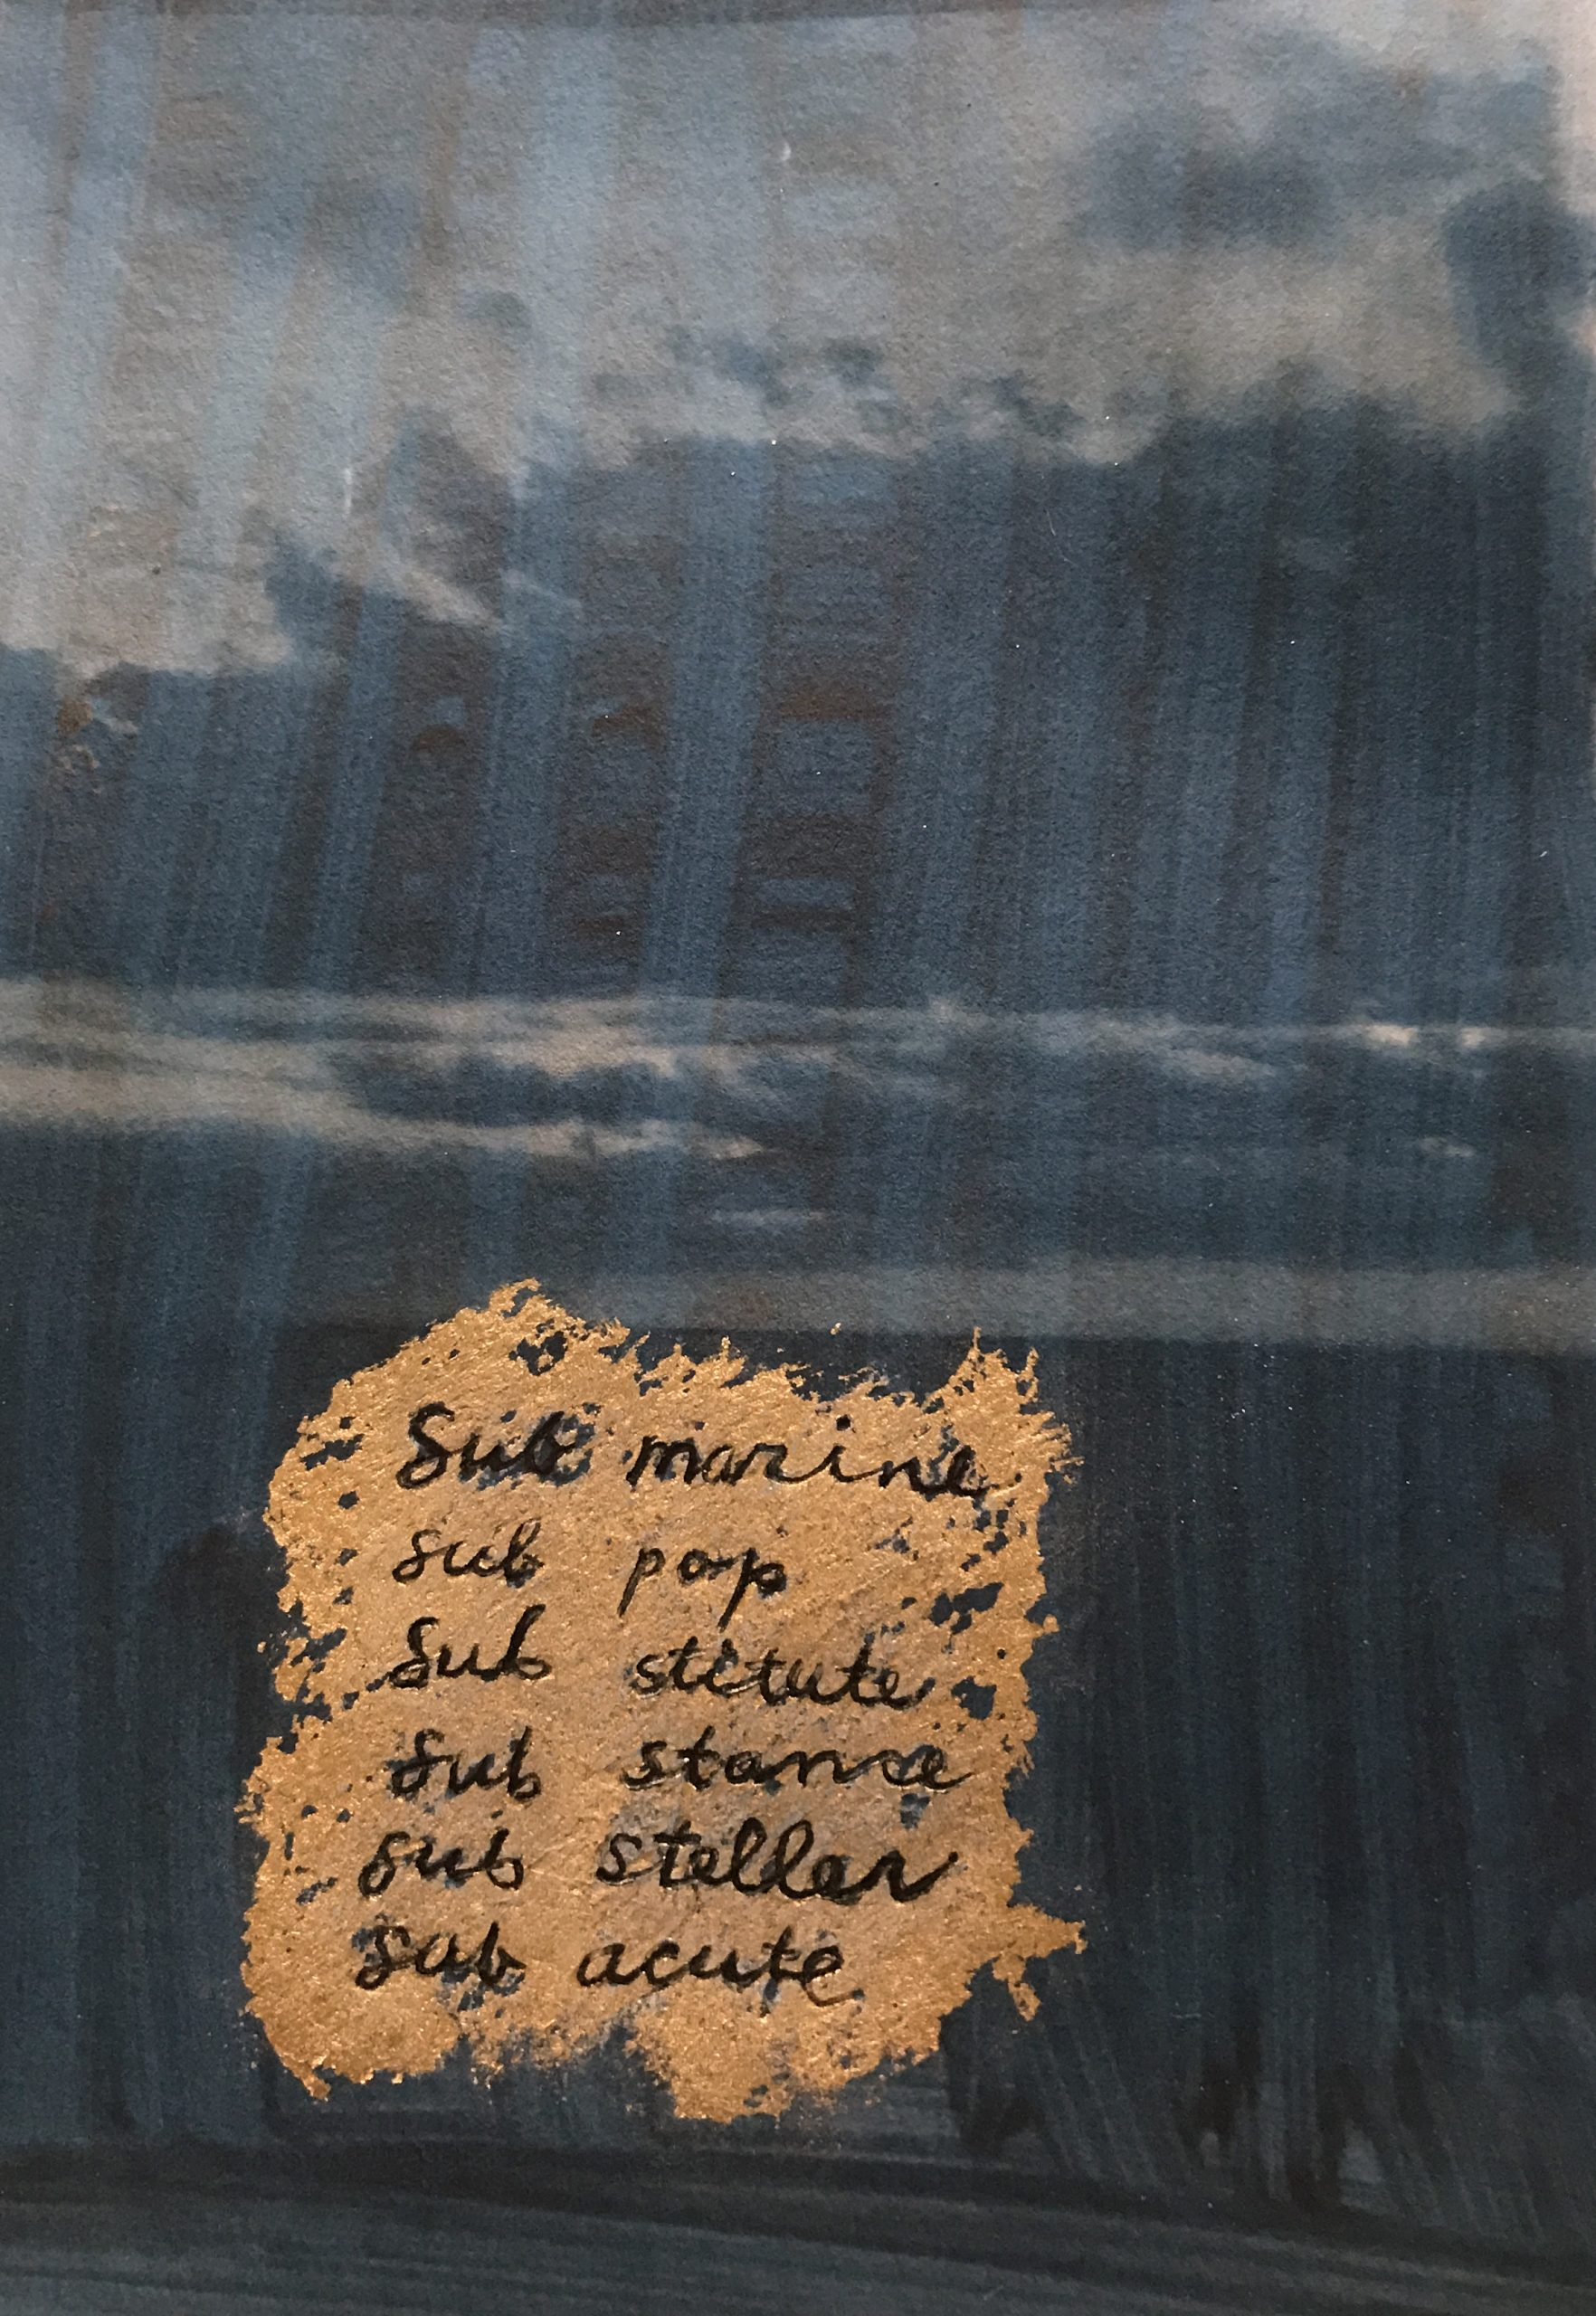 Alternative process photograph with gold overlay on handwritten text.